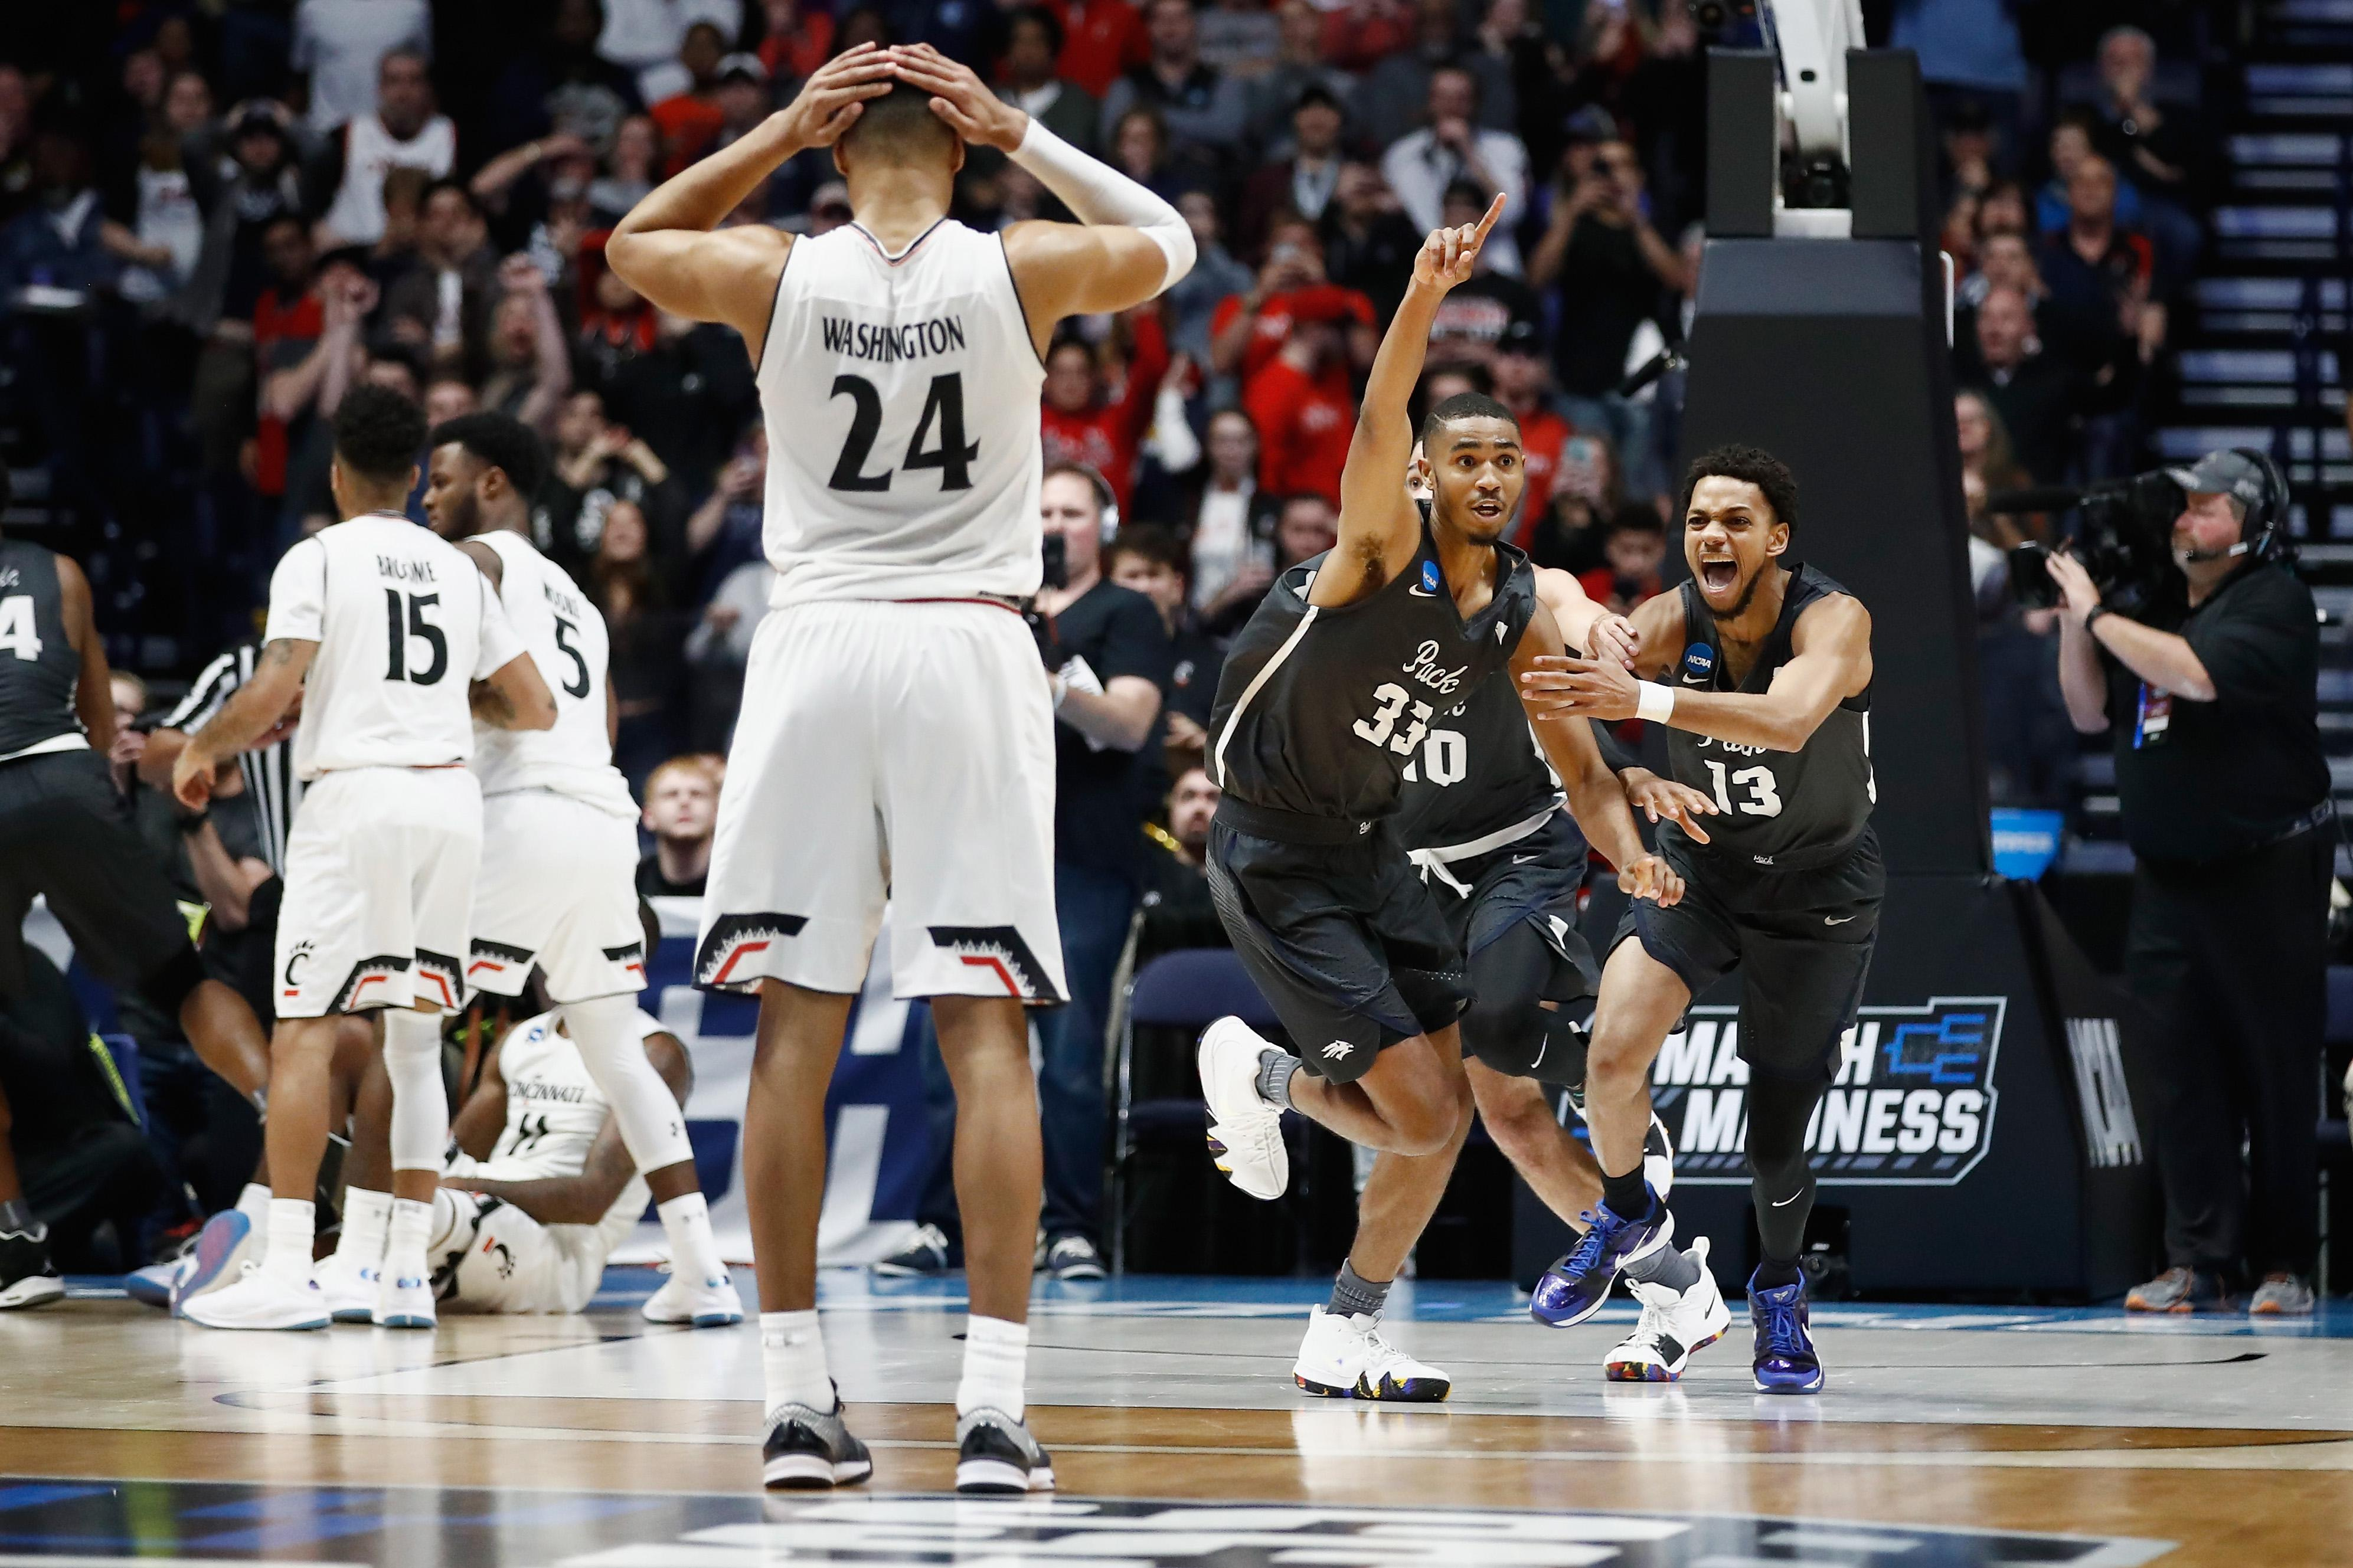 NASHVILLE, TN - MARCH 18: Josh Hall #33 of the Nevada Wolf Pack celebrates with Hallice Cooke #13 after defeating the Cincinnati Bearcats during the second half in the second round of the 2018 Men's NCAA Basketball Tournament at Bridgestone Arena on March 18, 2018 in Nashville, Tennessee. (Photo by Andy Lyons/Getty Images)